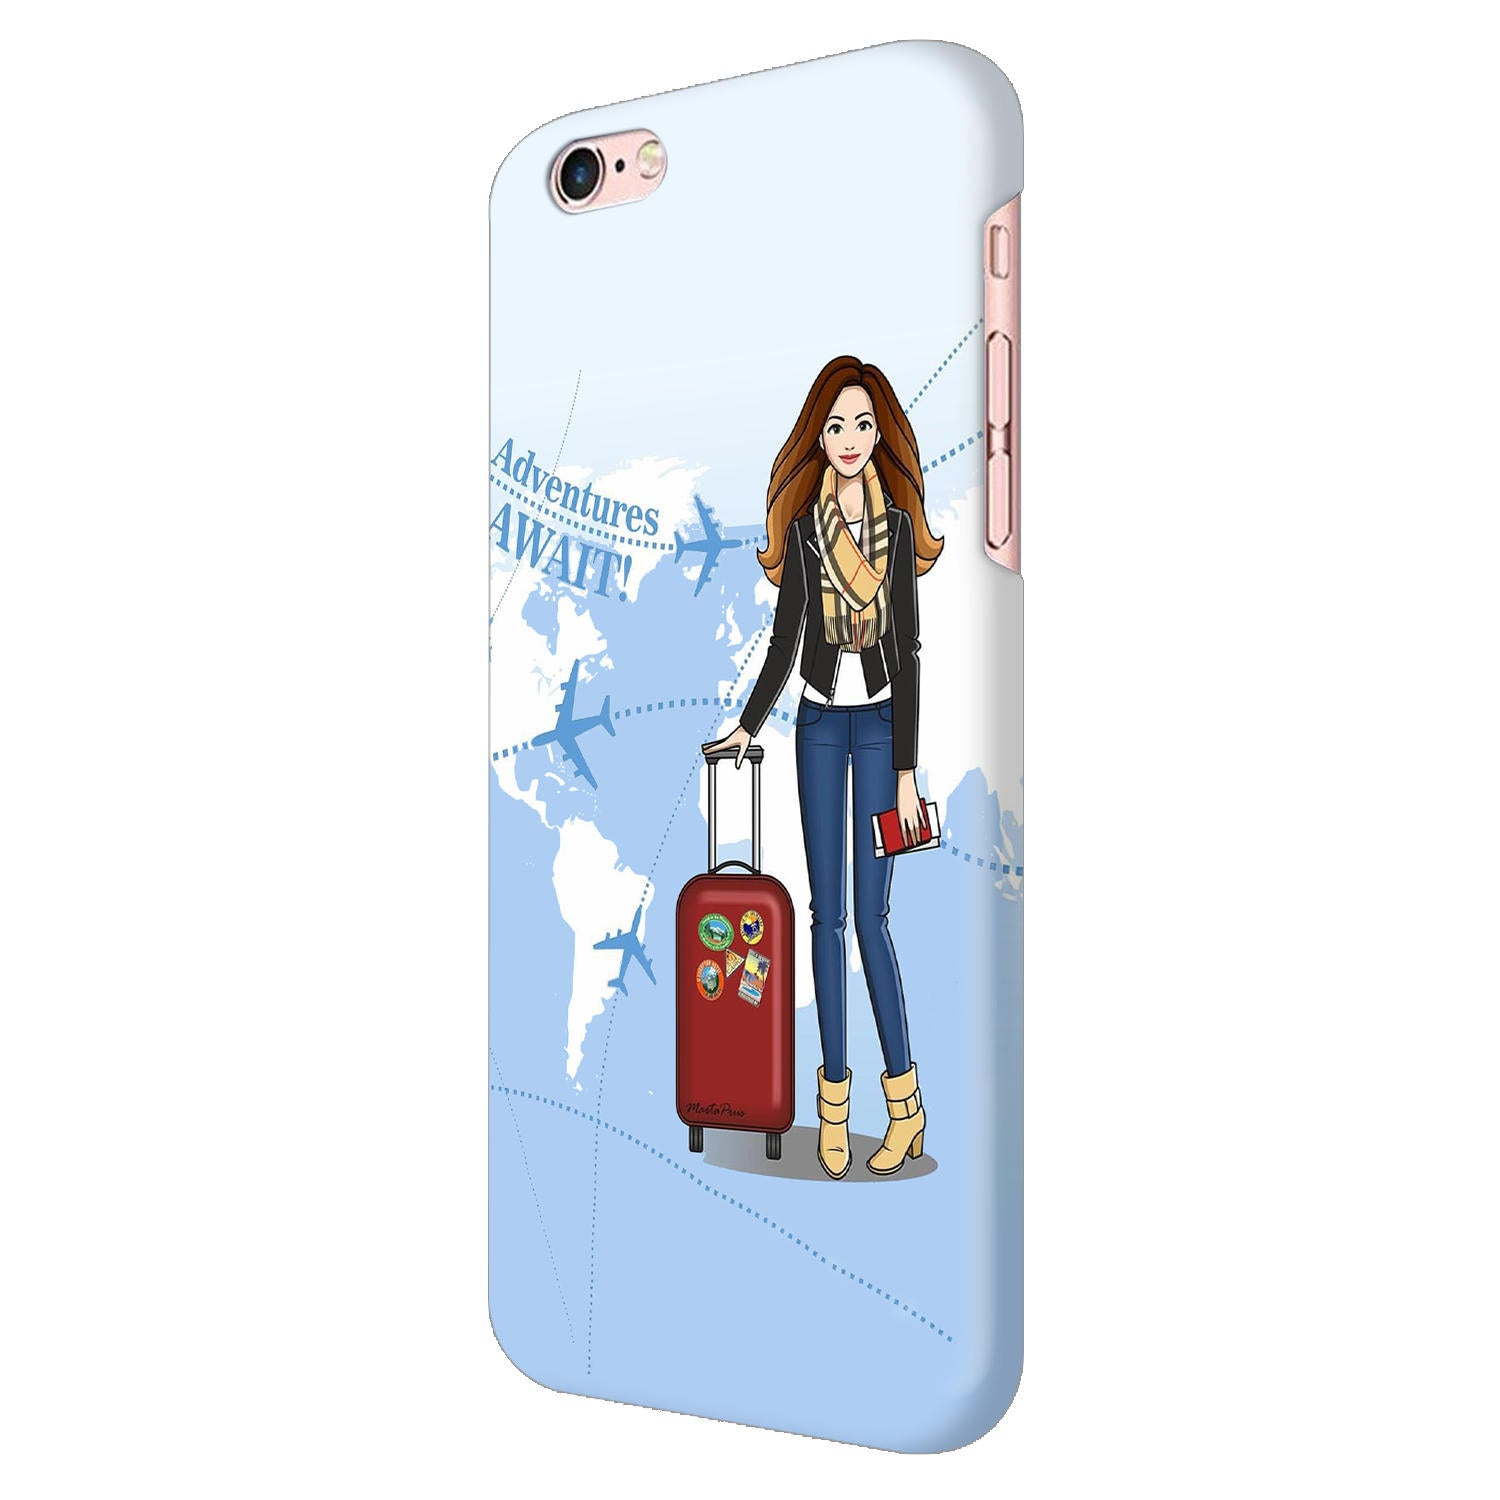 Girl Travel Adventure Await iPhone 6 Mobile Cover Case - MADANYU